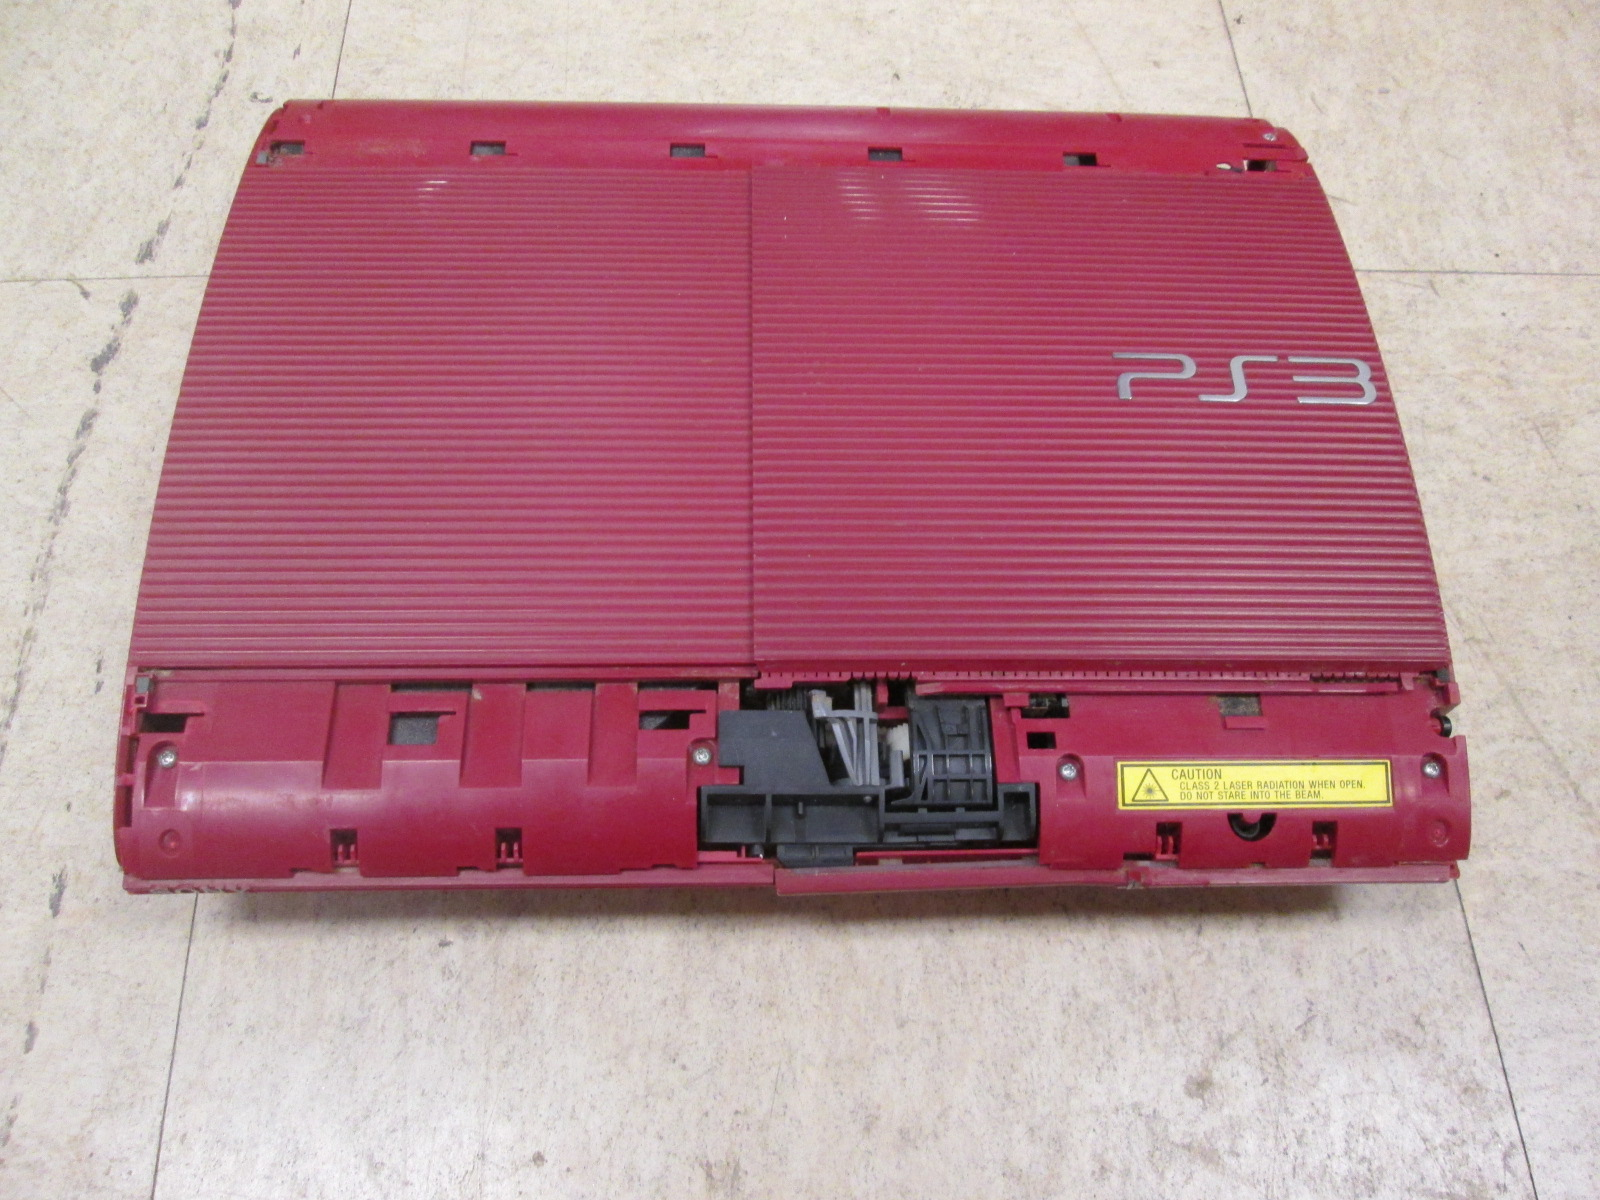 Broken Sony PlayStation 3 PS3 500GB Video Game Console Only Red